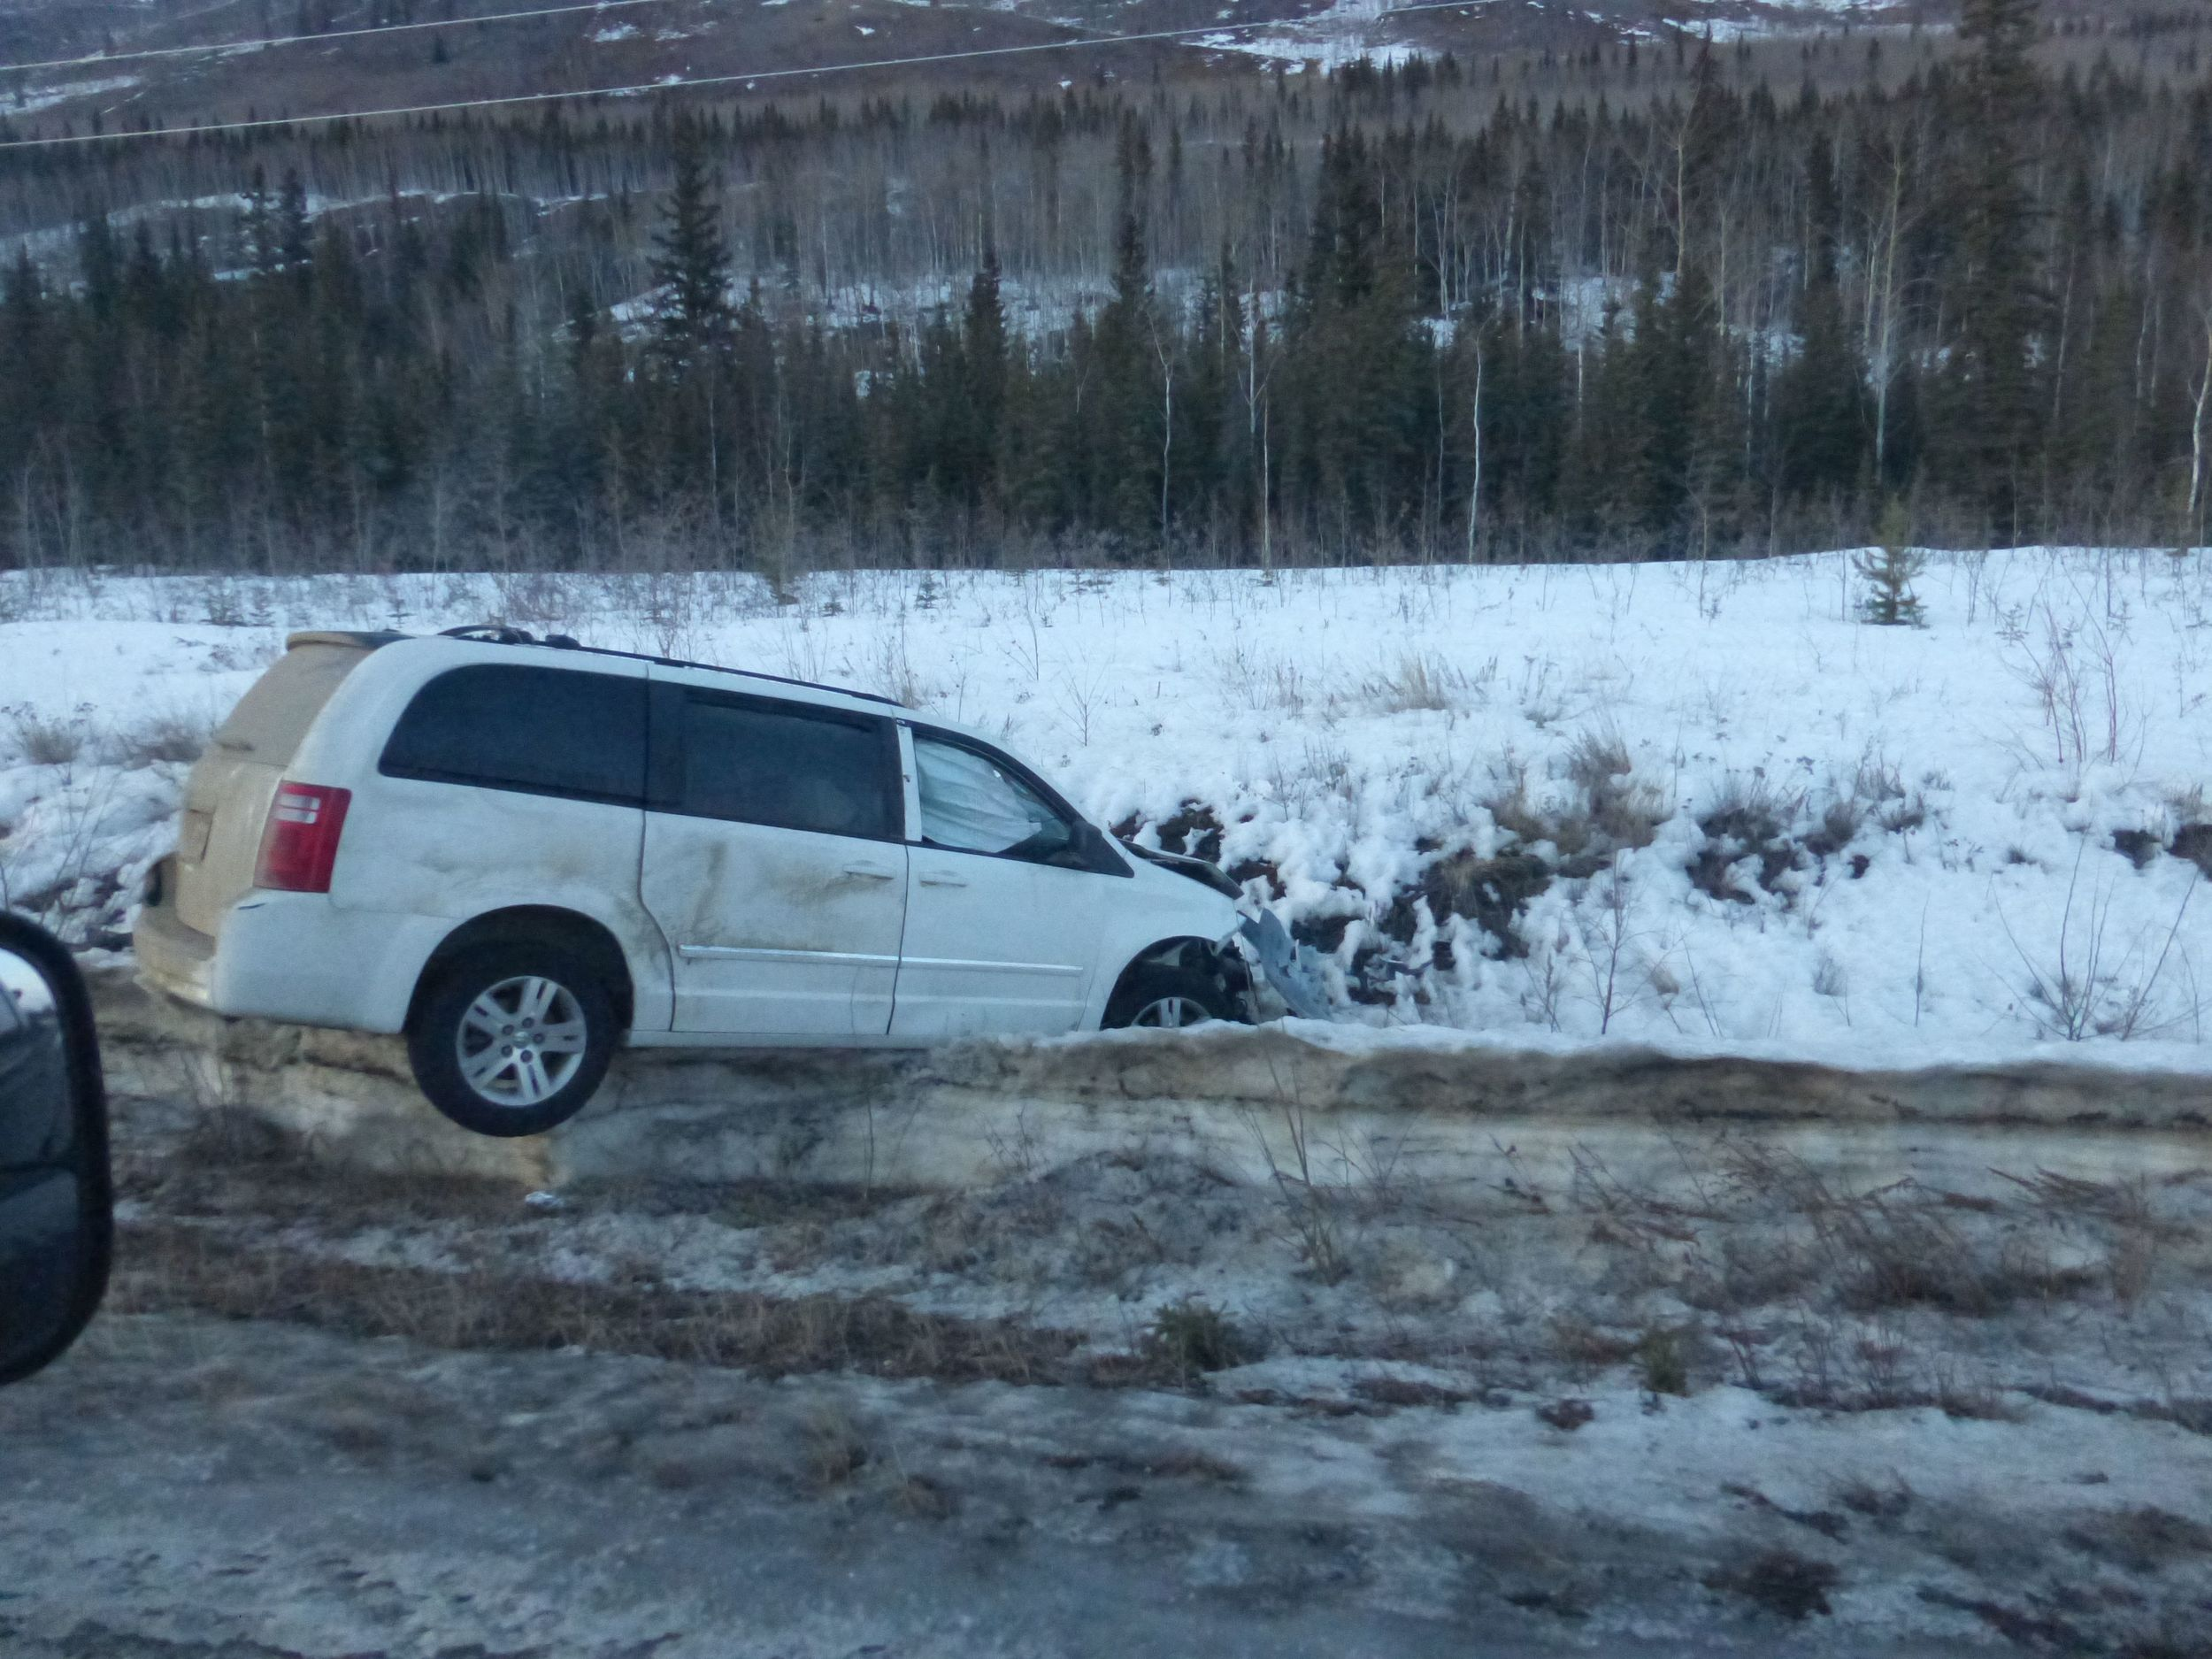 This is number 9, The Klondike Highway ditch was littered with cars who must have spun out of control because of a freezing rain they had recently.